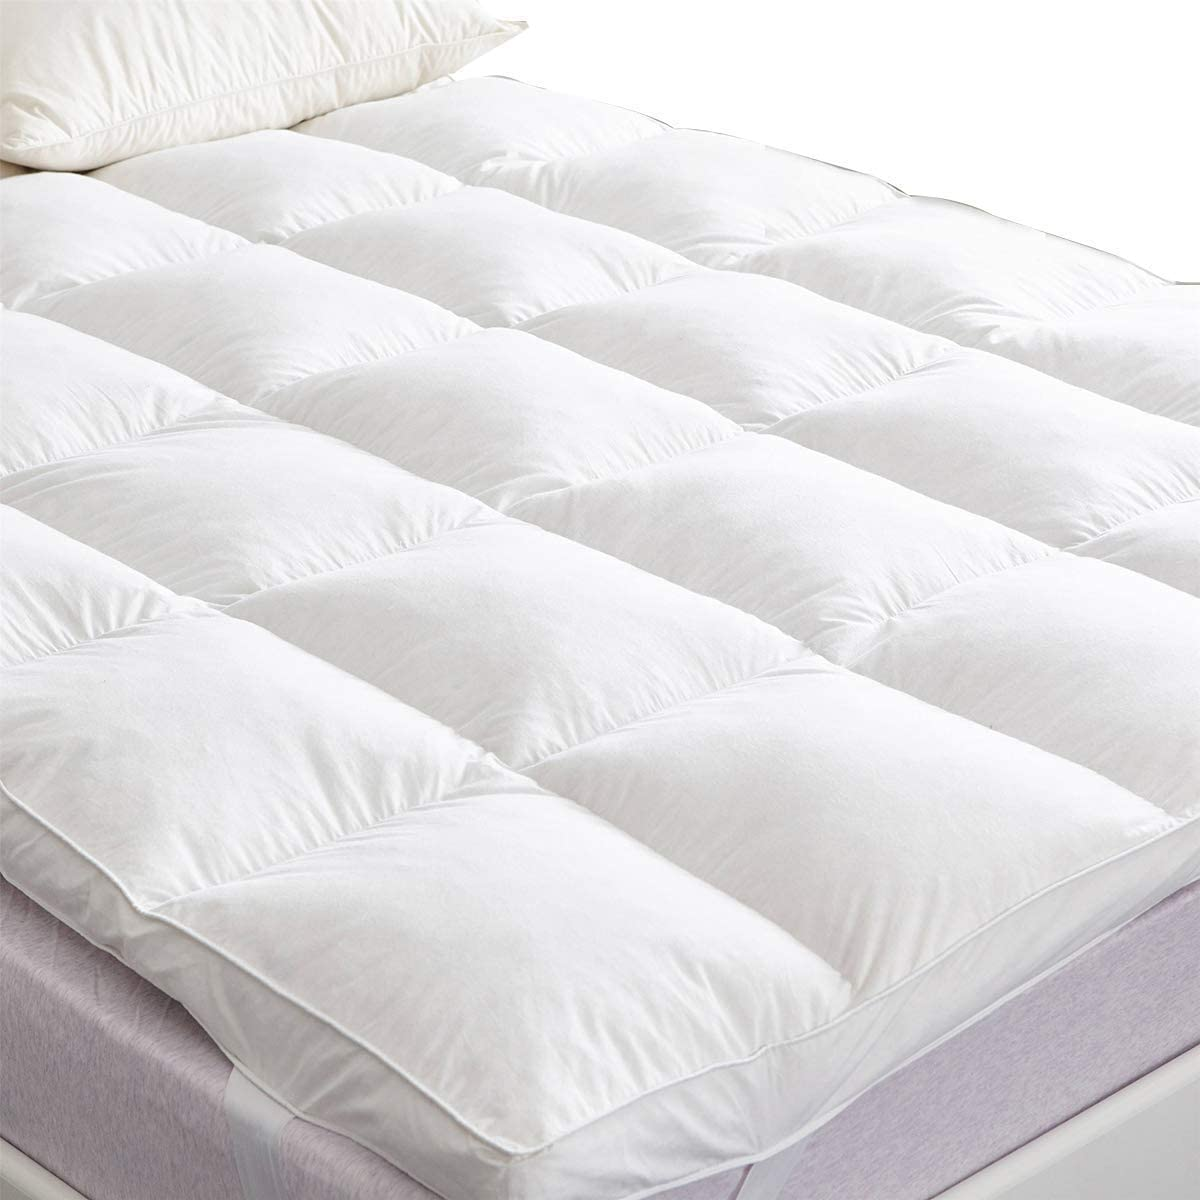 Mattress Topper Bamboo  10 CM OR 4 INCH Thick Organic LIMITED STOCK